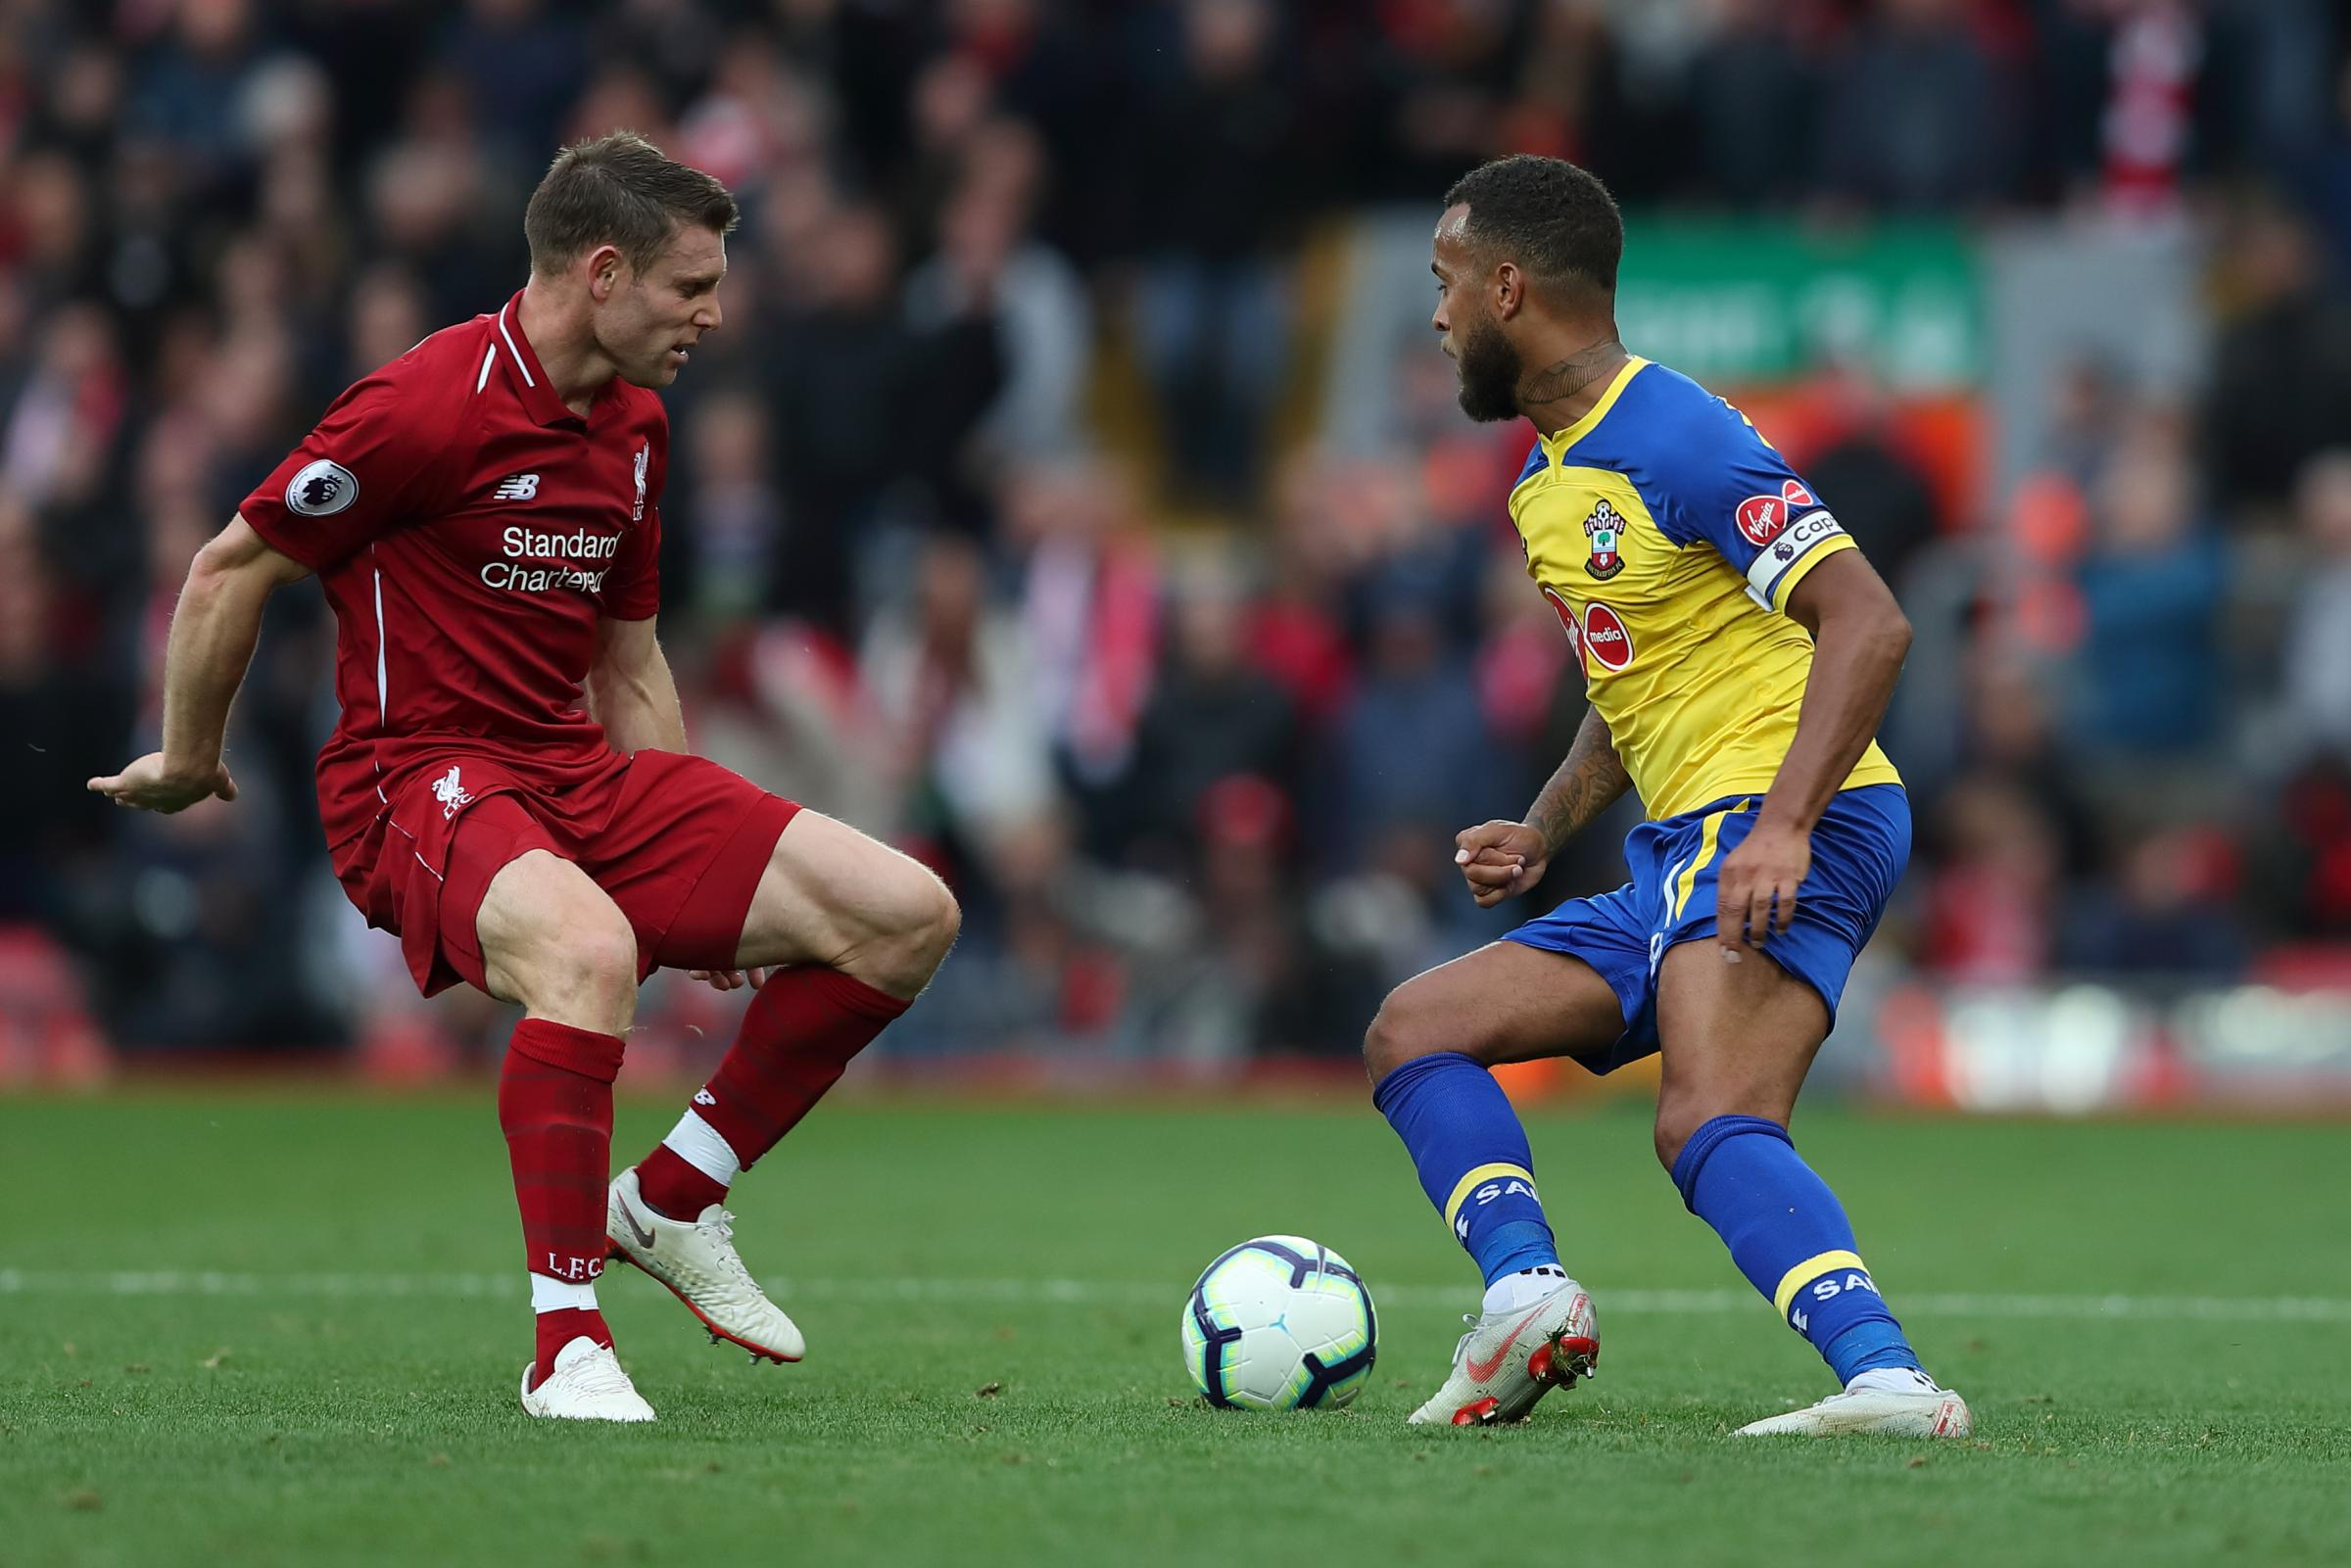 Ryan Bertrand takes on James Milner at Anfield on Saturday